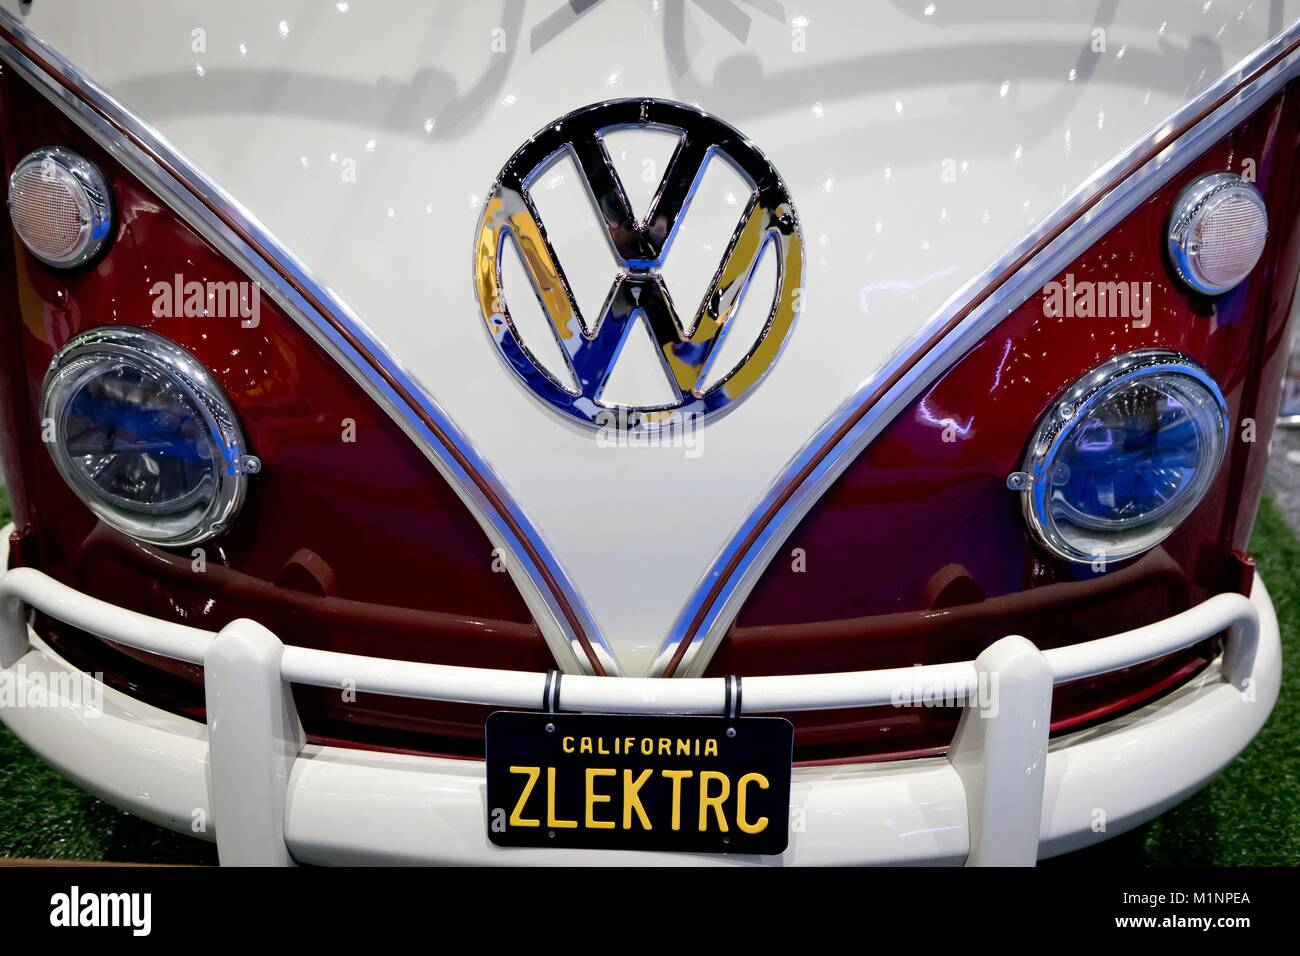 Electric-Powered vintage Volkswagen Bus, transformed by Zelectric ...